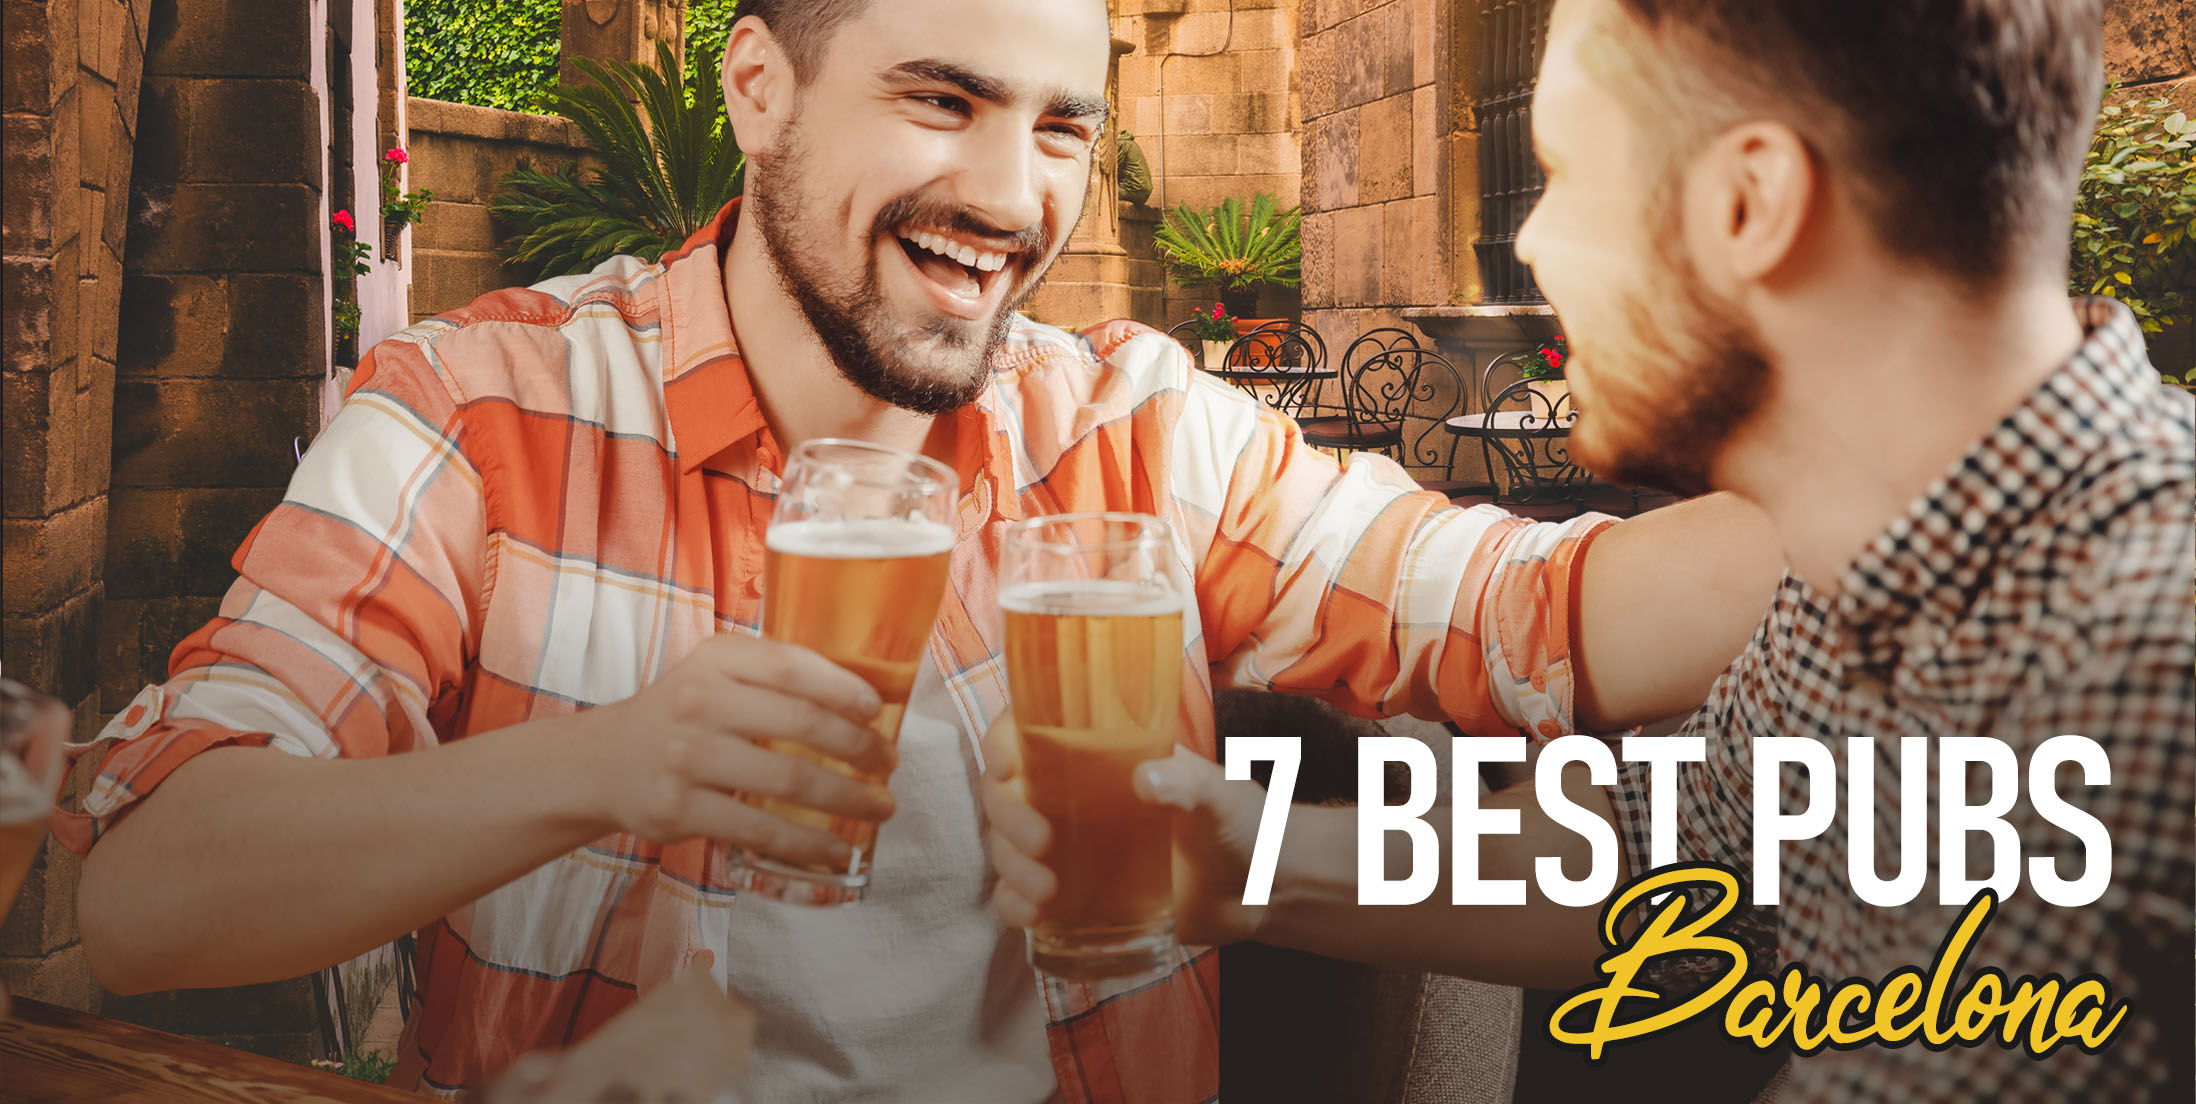 7 Best Pubs in Barcelona